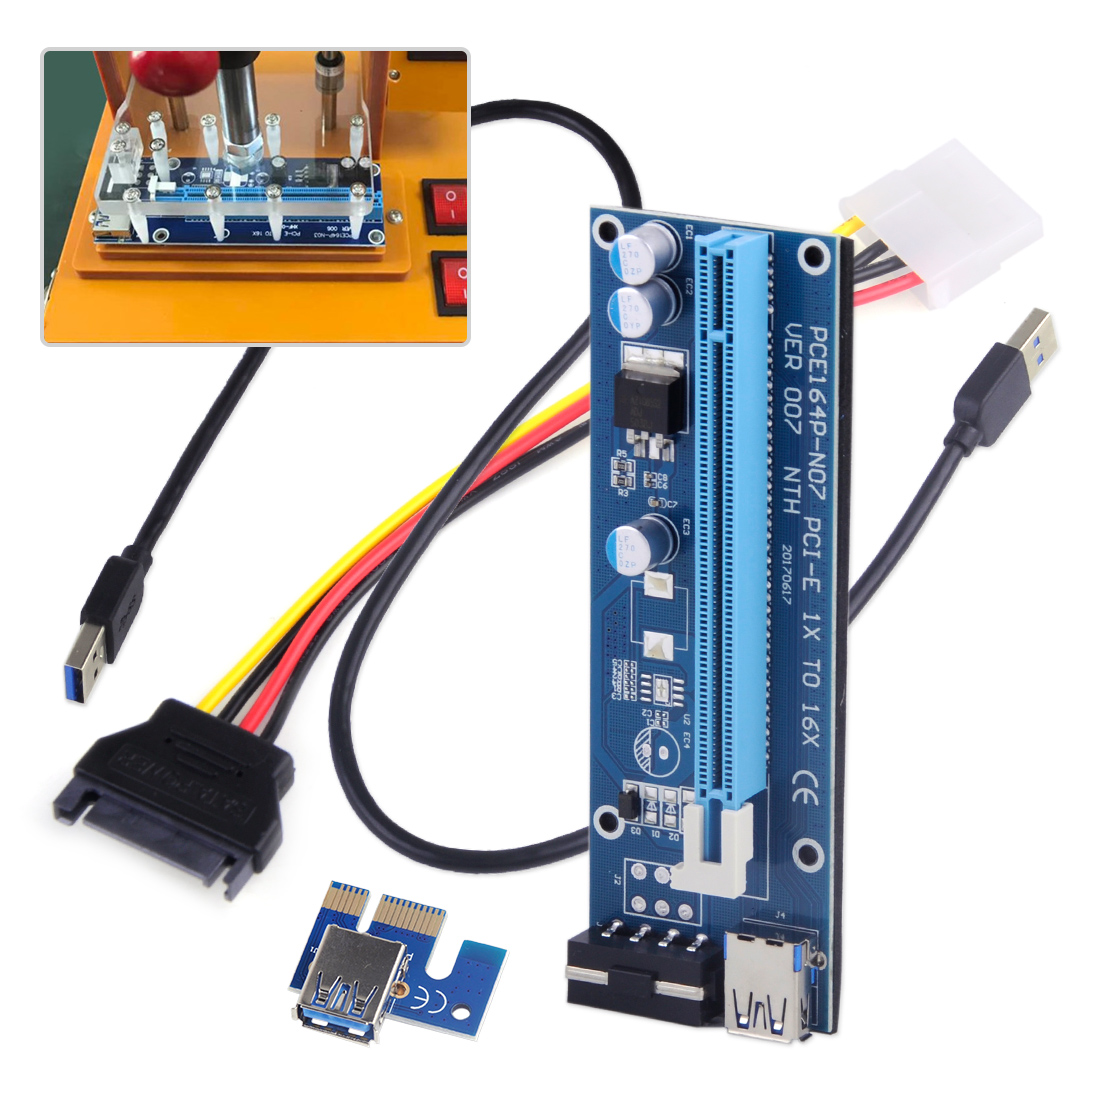 USB 3.0 Pcie PCI-E Express Extender Riser Card Adapter Power BTC Mining Cable 1X